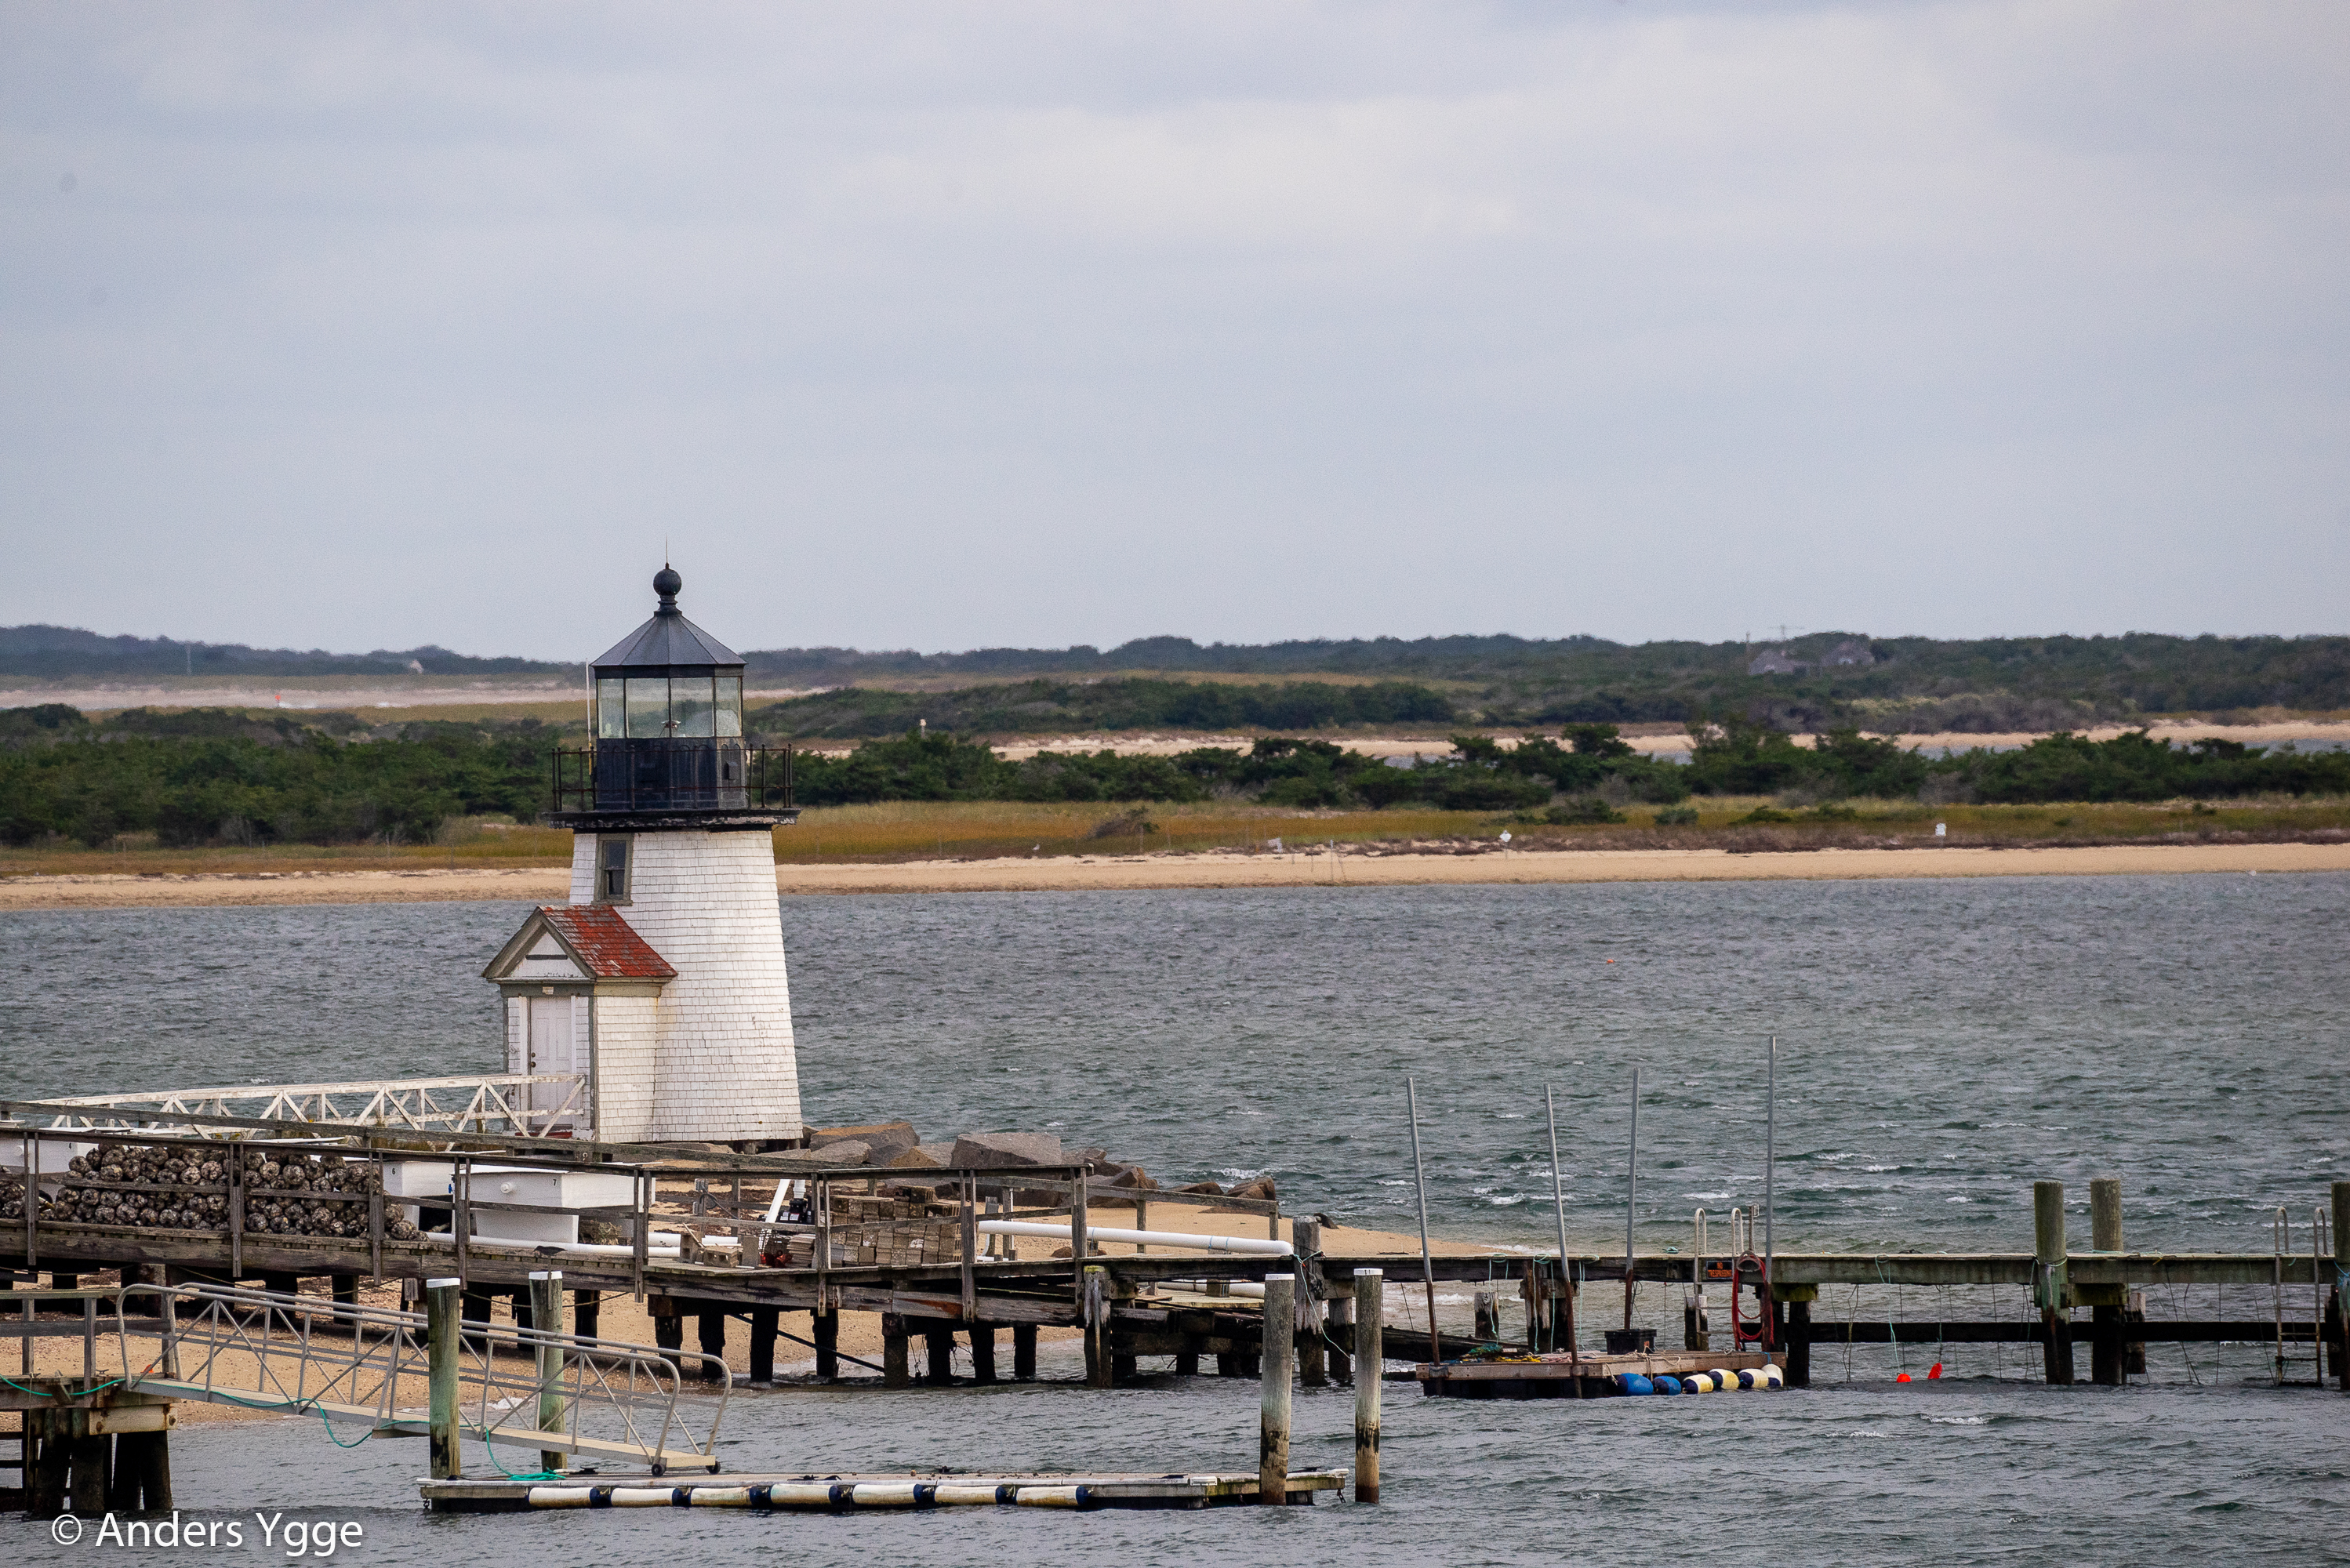 Brant Point L, Nantucket, USA